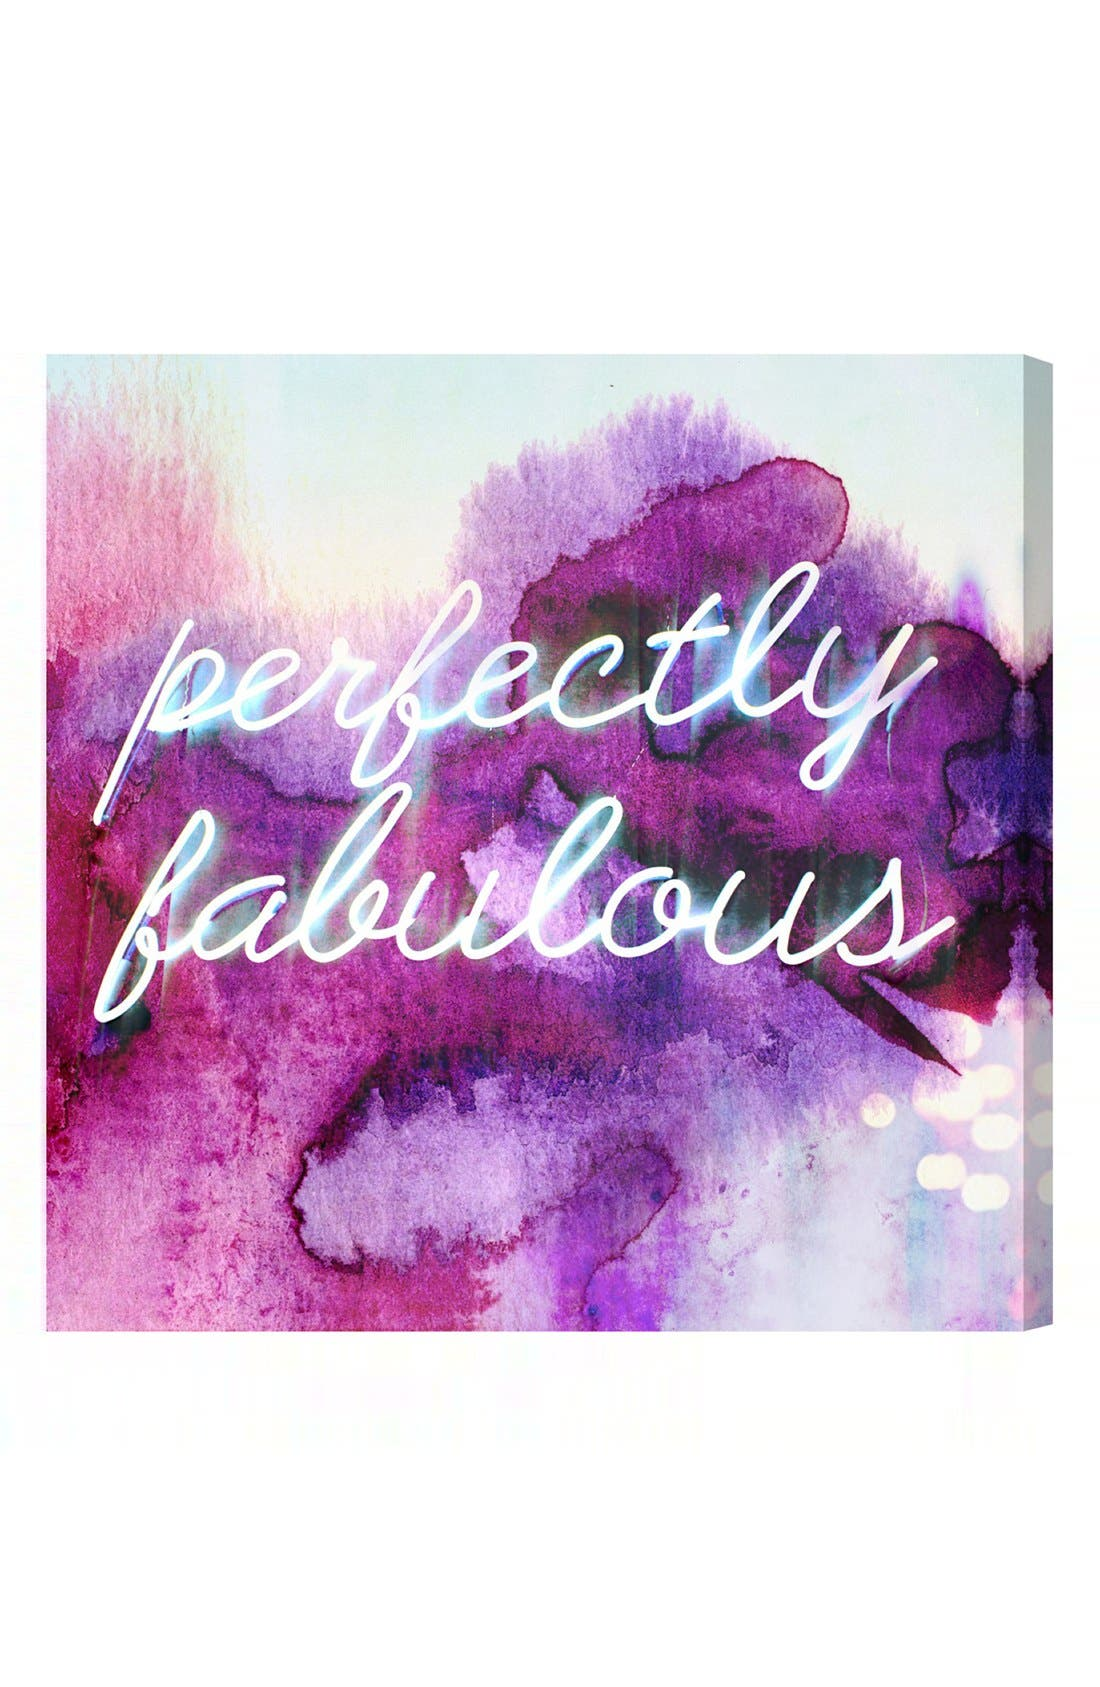 Alternate Image 1 Selected - Oliver Gal 'Perfectly Fabulous' Wall Art